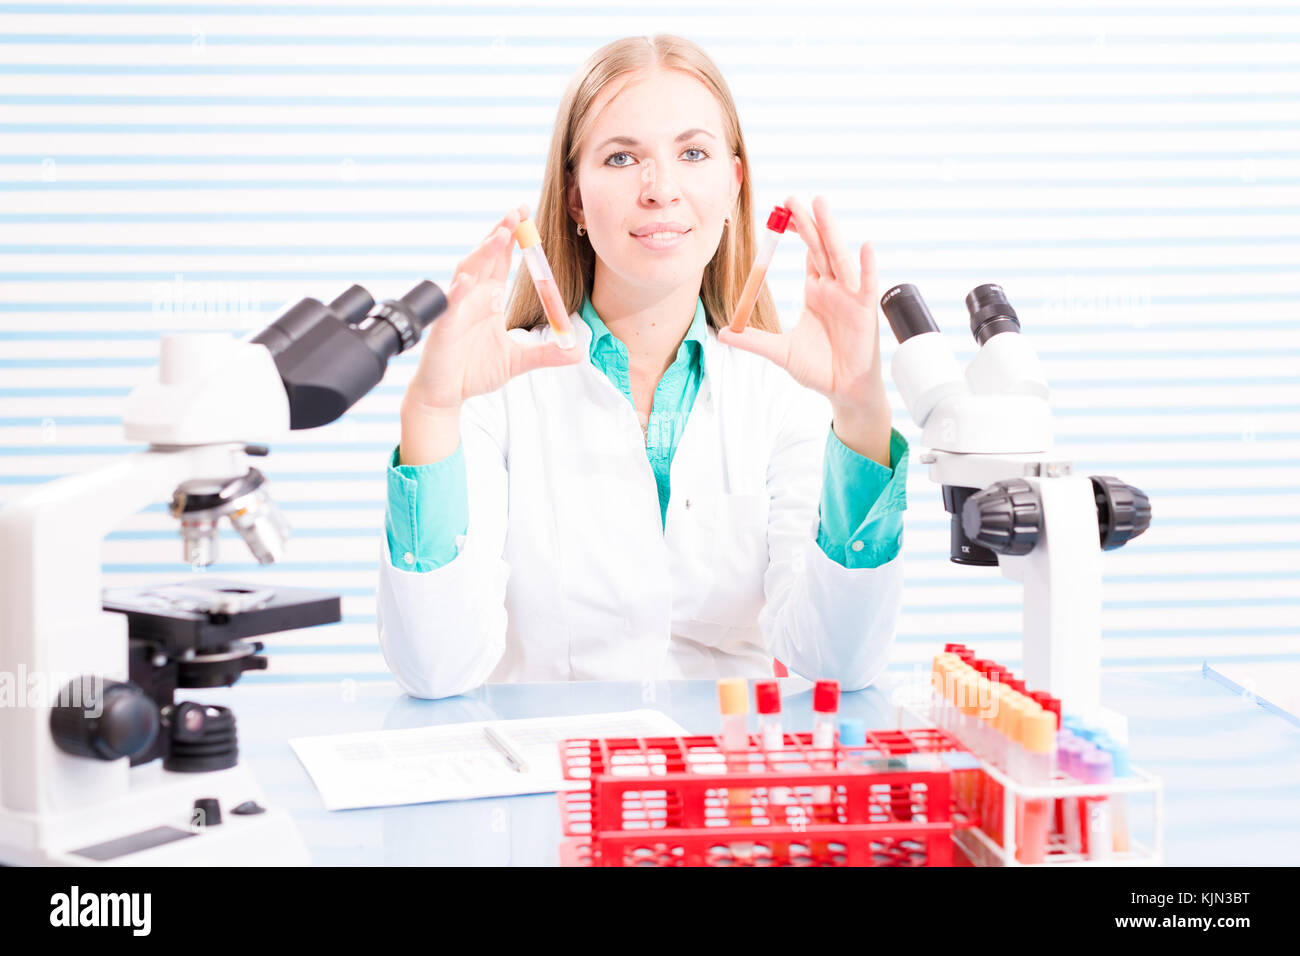 Nurse in the hospital laboratory - Stock Image